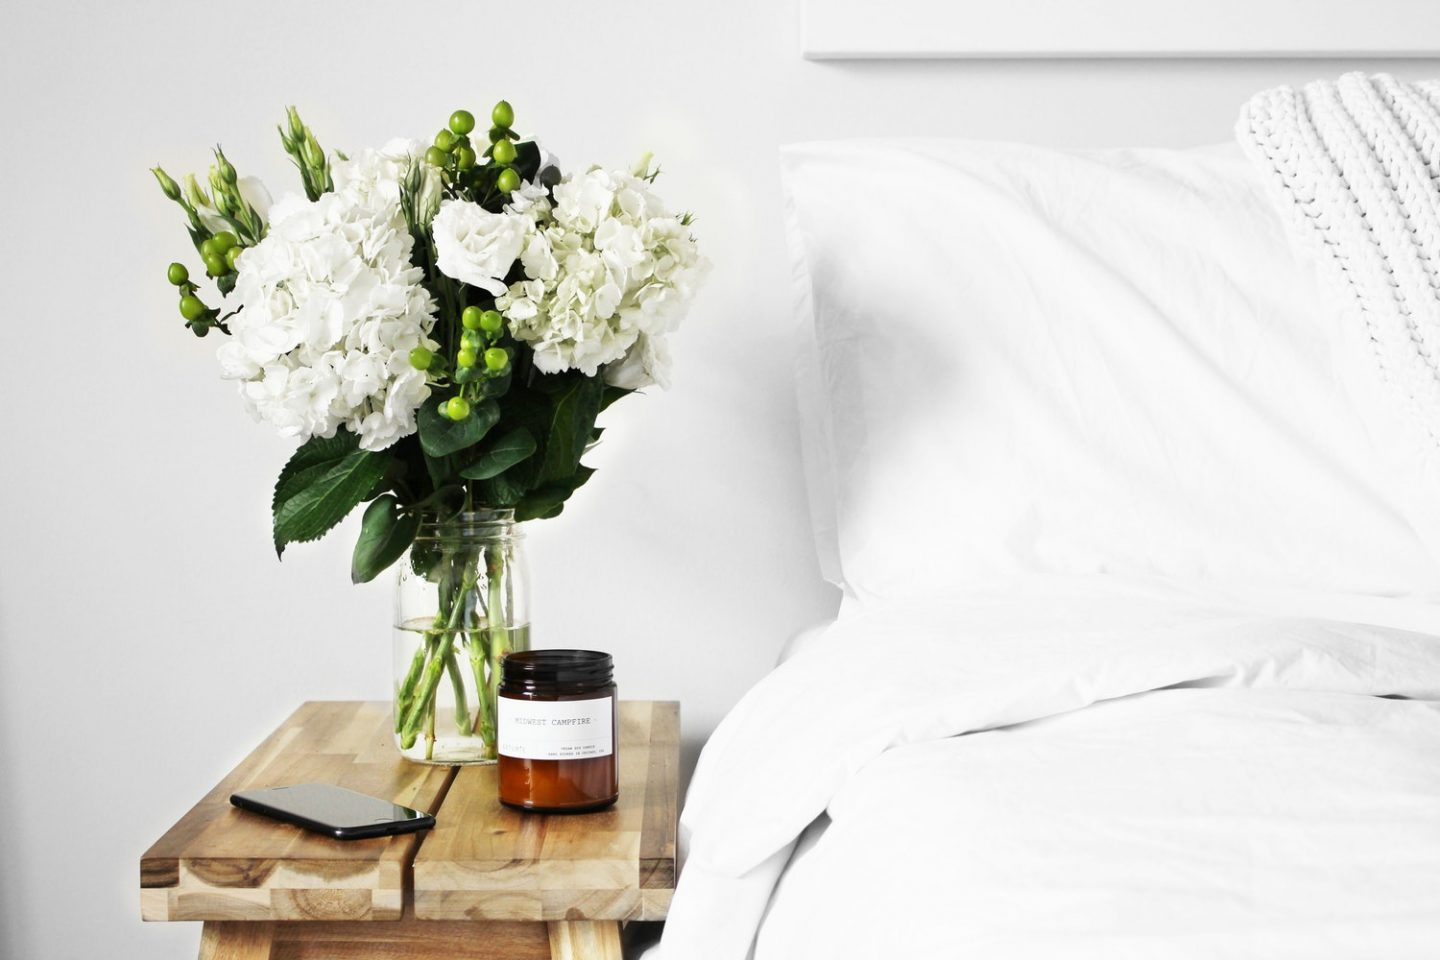 Practical Upgrades That Will Actually Make The Home Feel Happier